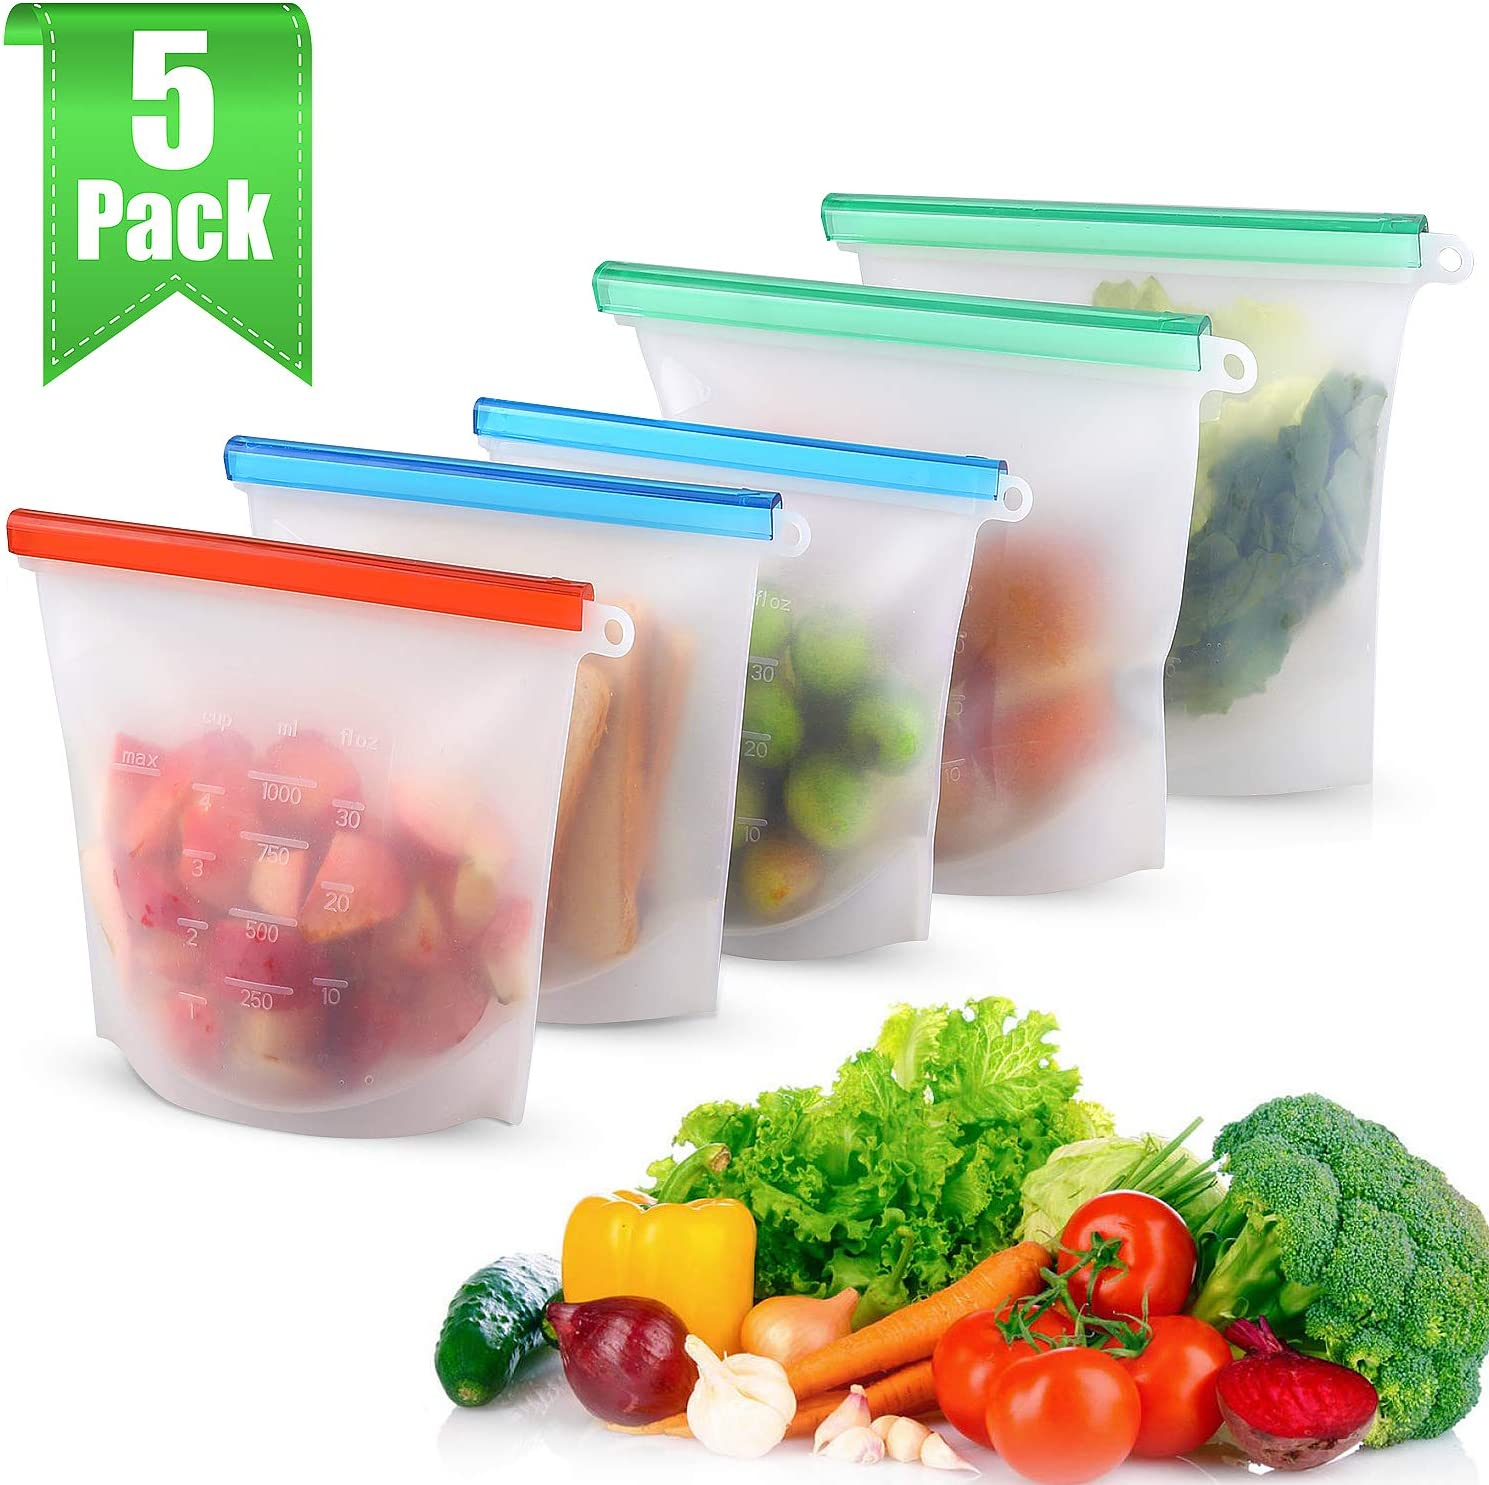 Amazon coupon code for Reusable Silicone Food Storage Bags